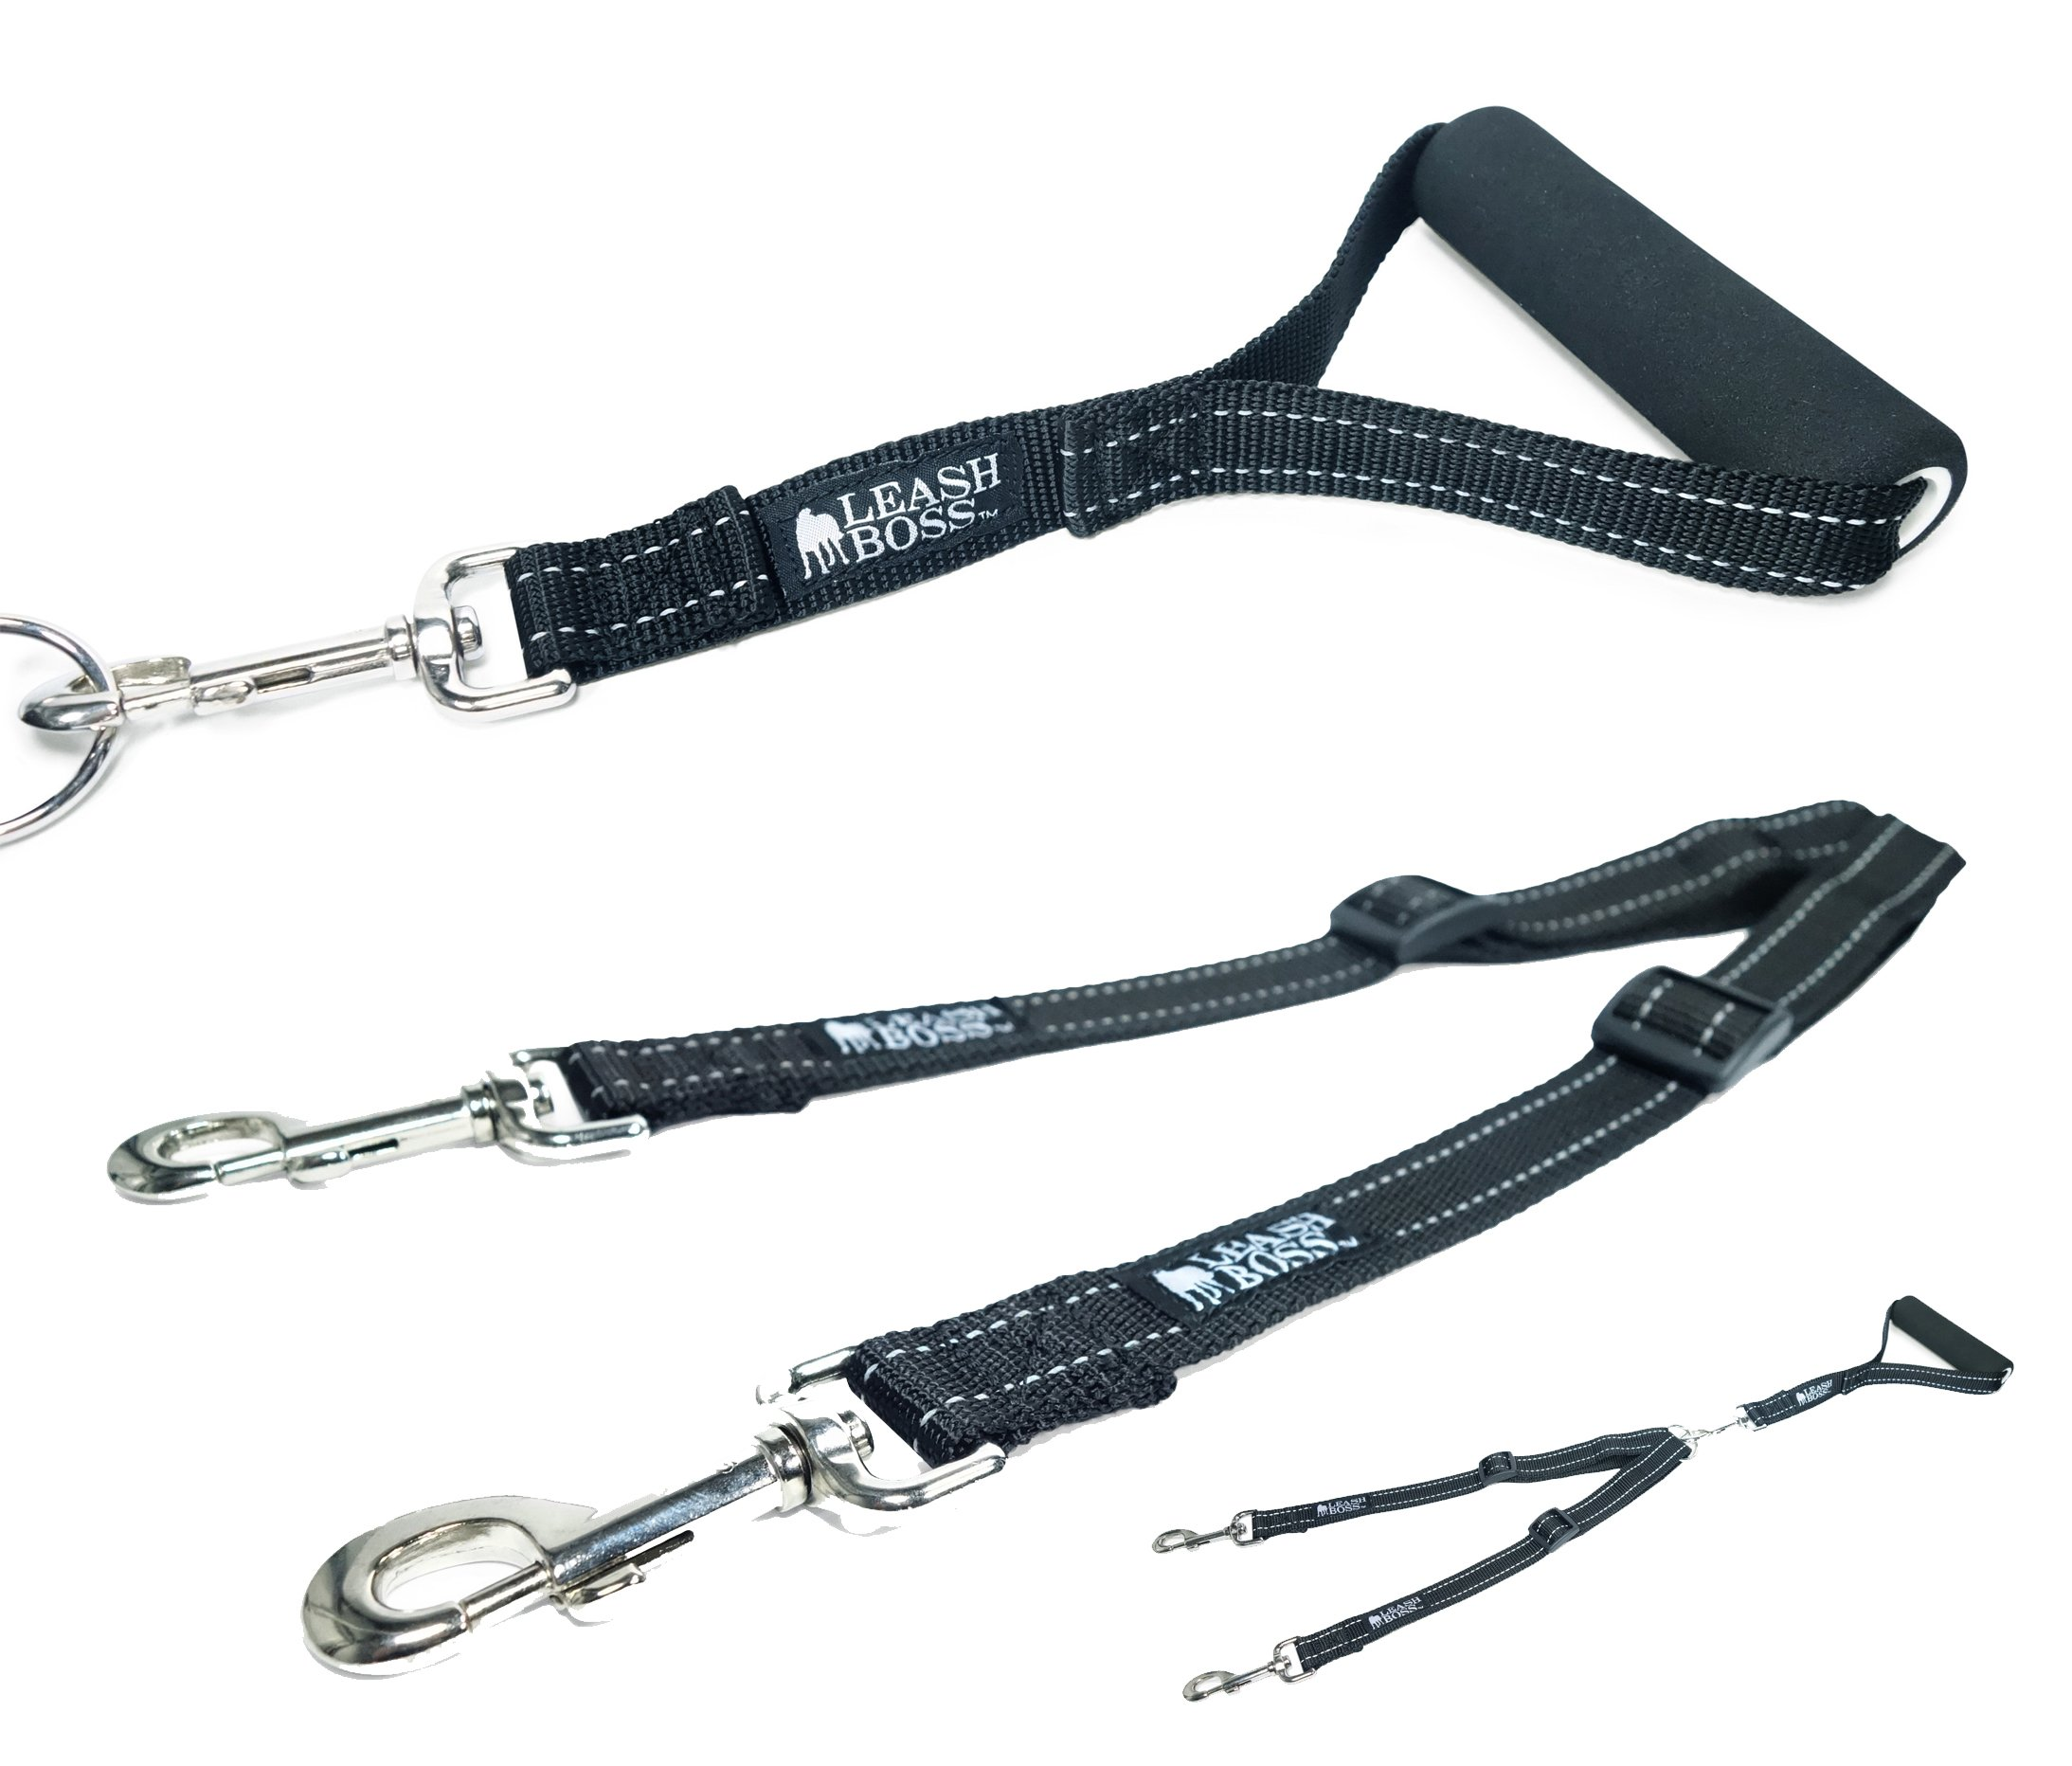 Leashboss Duo - Double Dog Leash with Handle - Adjustable Reflective Coupler For Two Large Dogs - No Tangle Leash Splitter